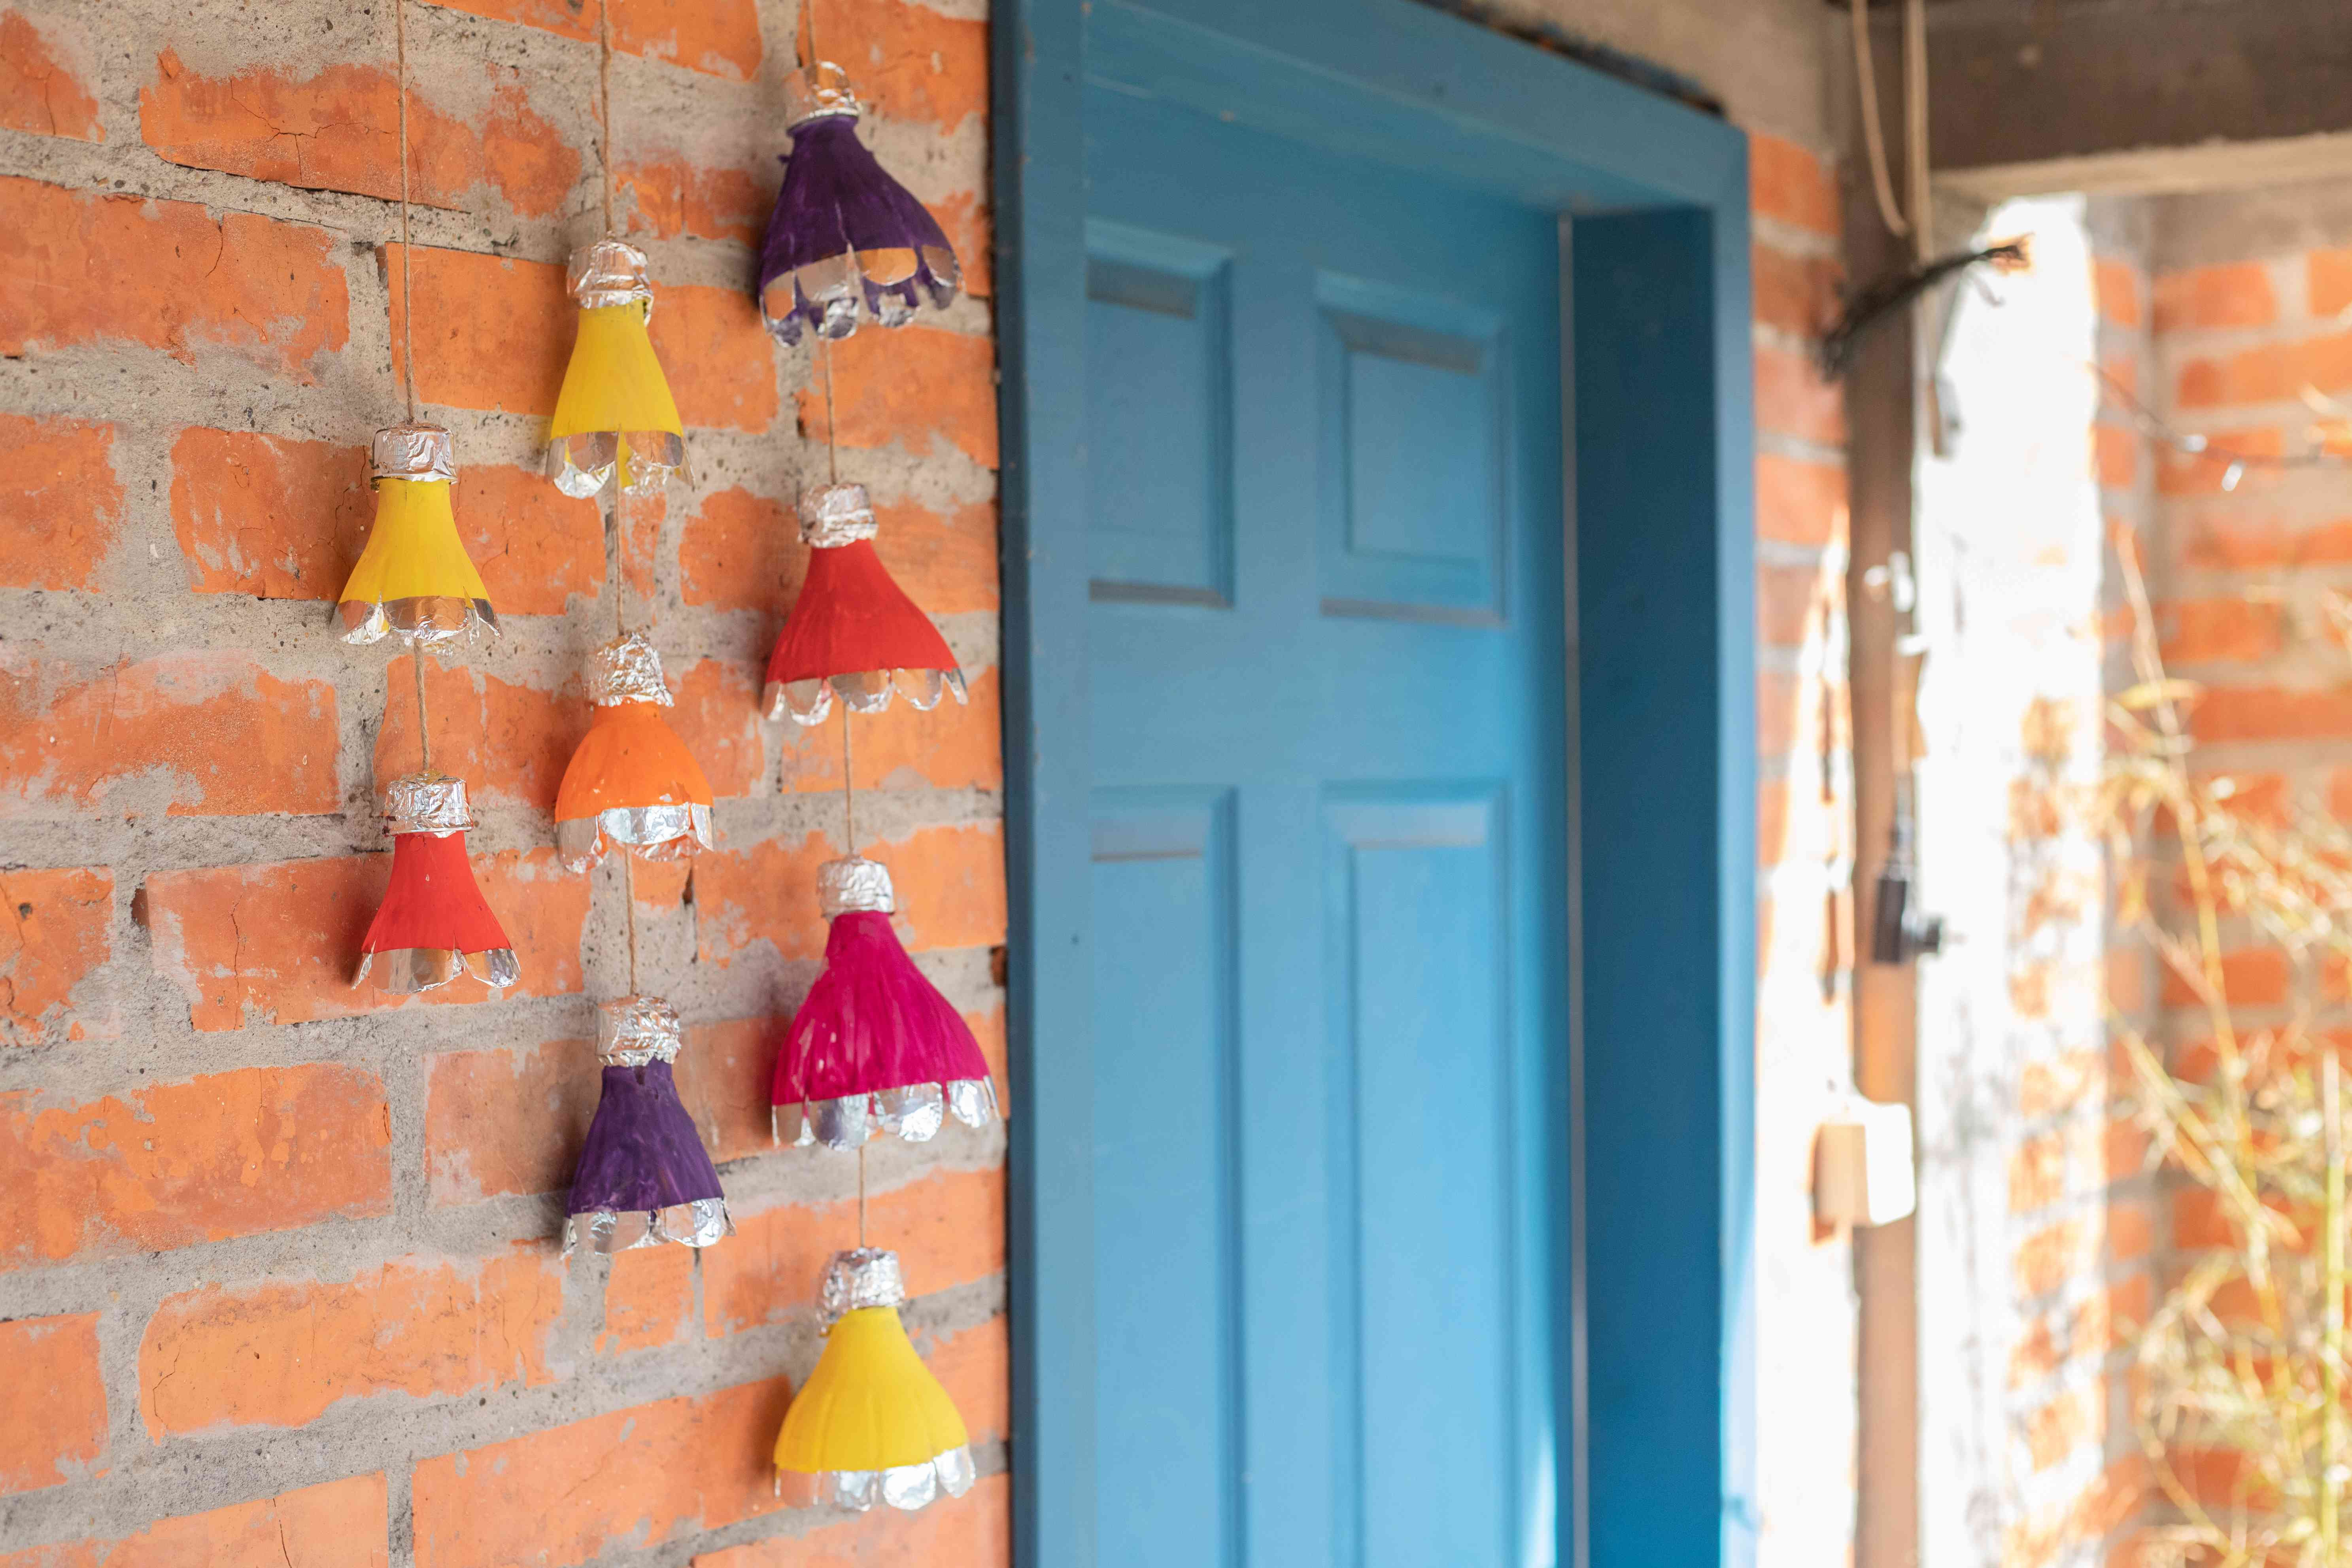 brightly colored plastic bottles upcycled into outdoor mobile